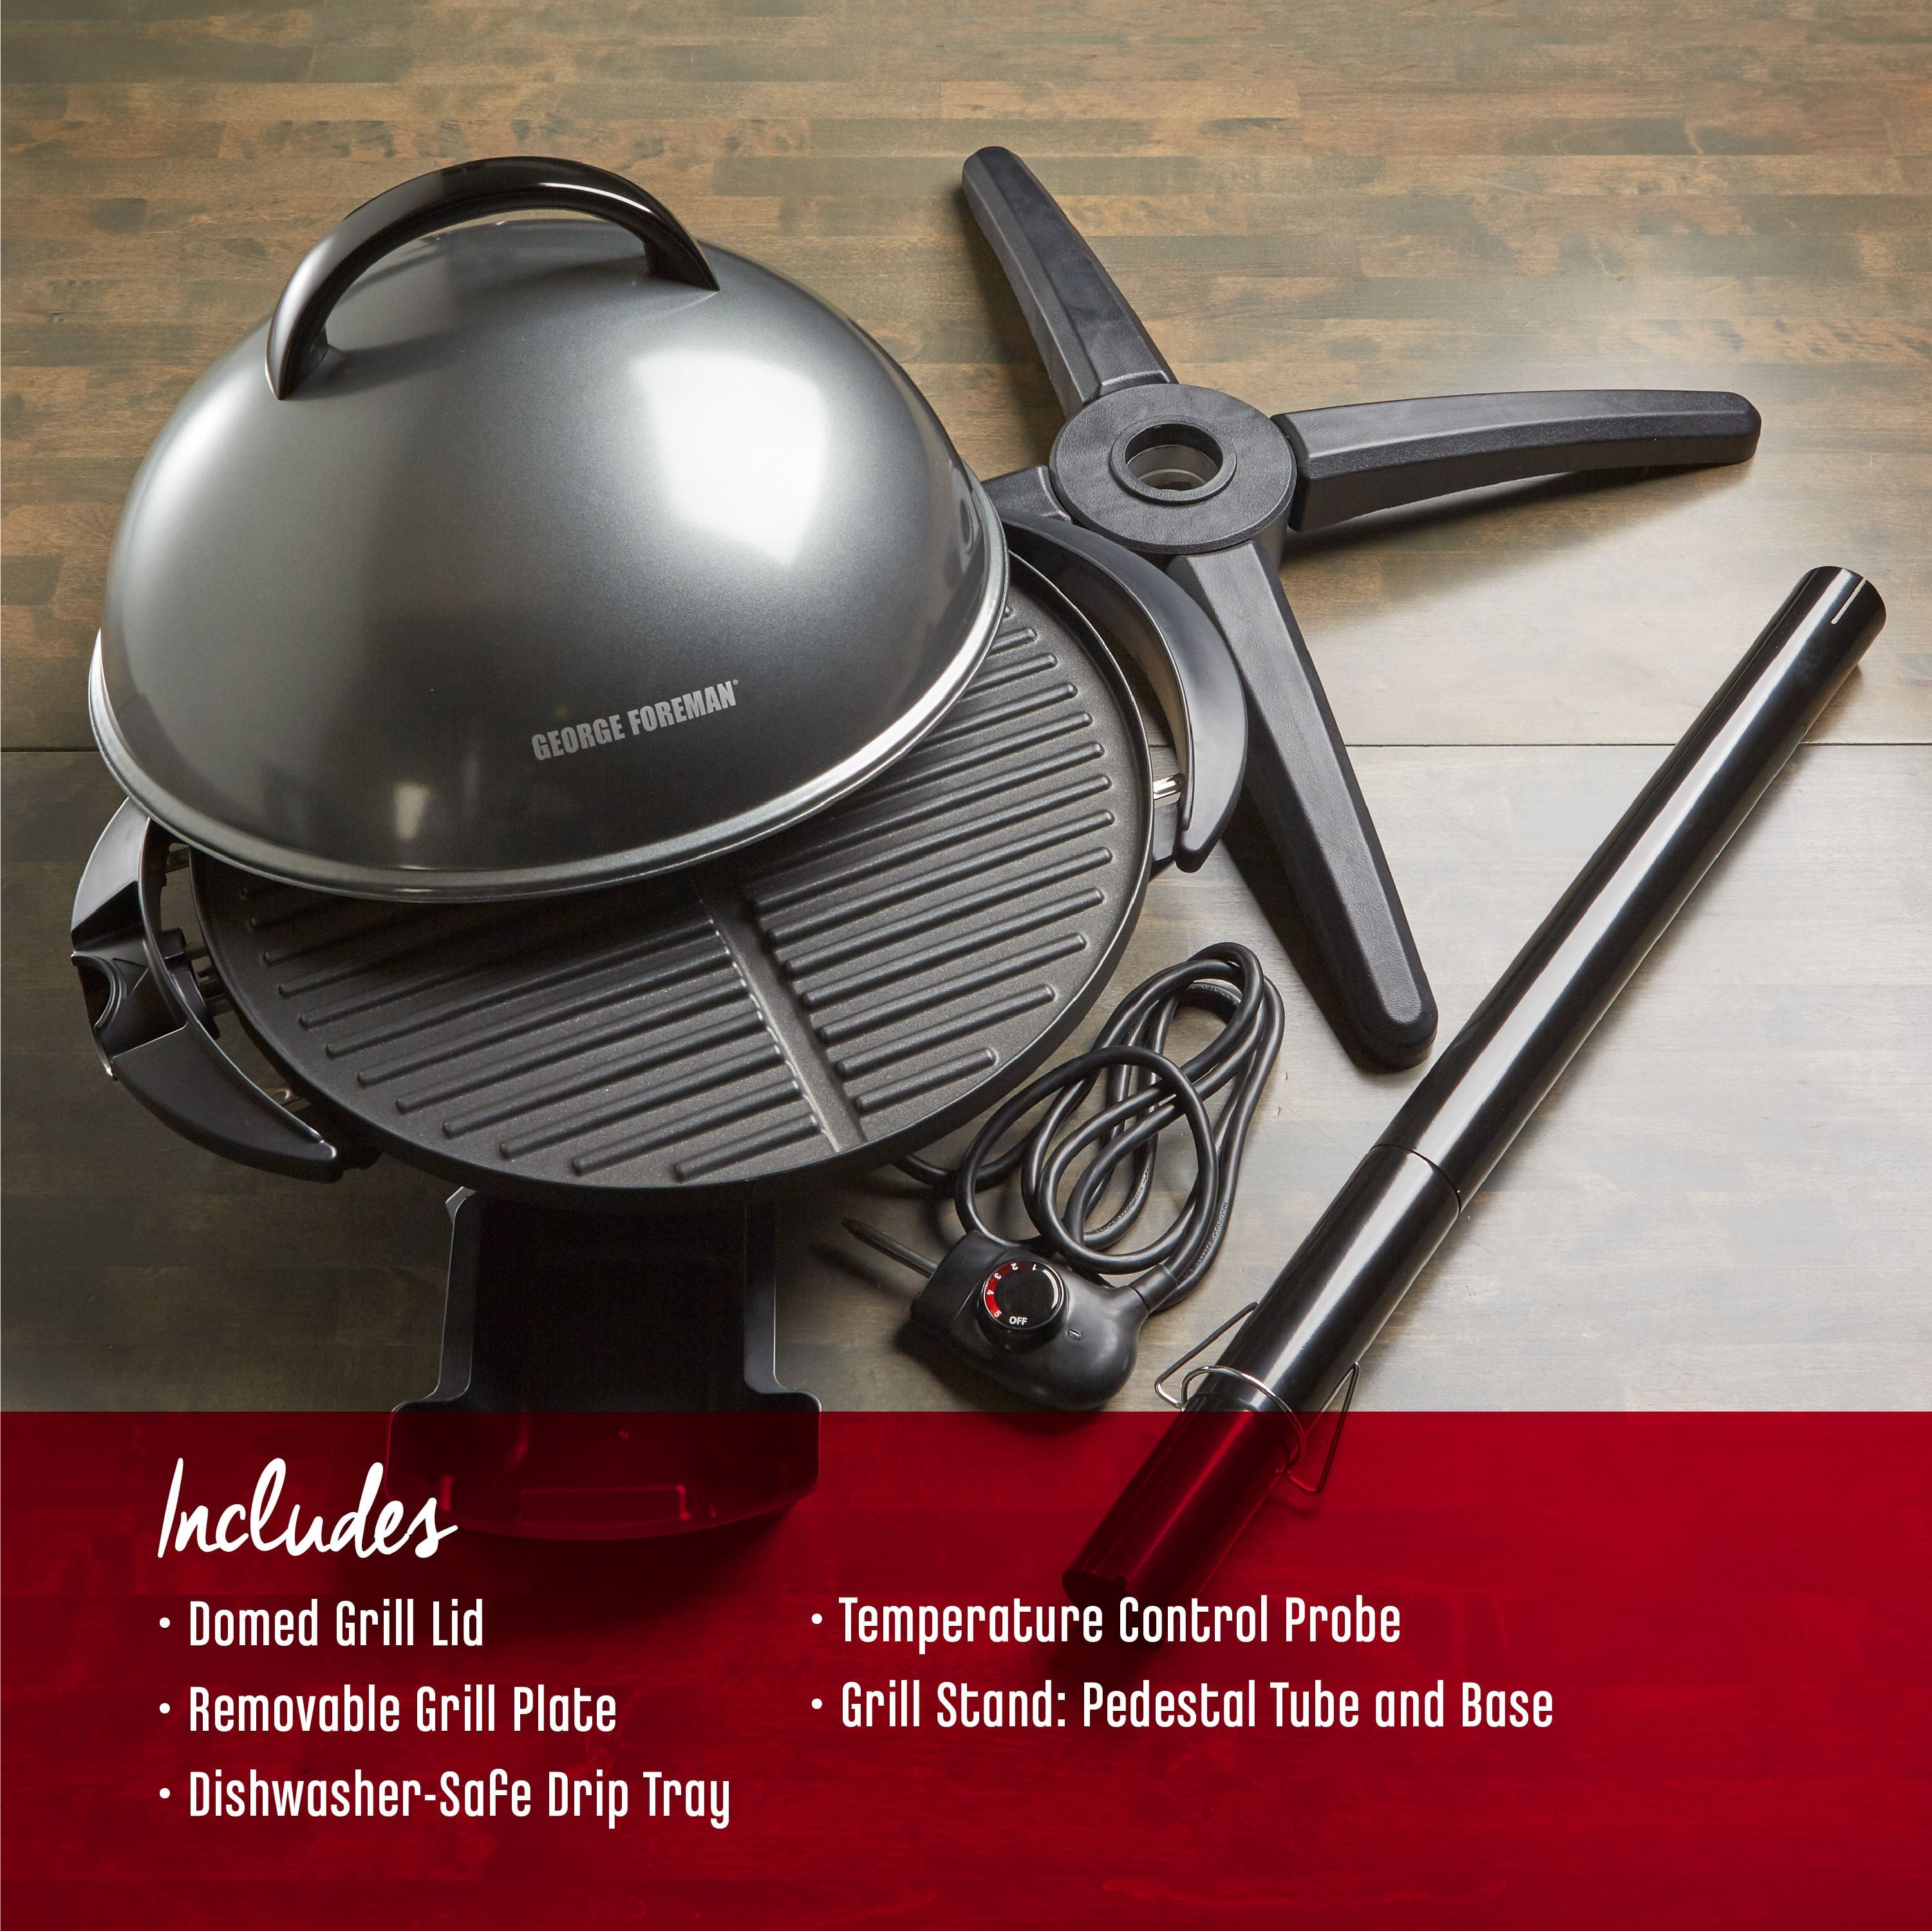 George Foreman 15+ Serving Indoor/Outdoor Electric Grill, Gun Metal, GFO240GM $64.98 + Free S/H